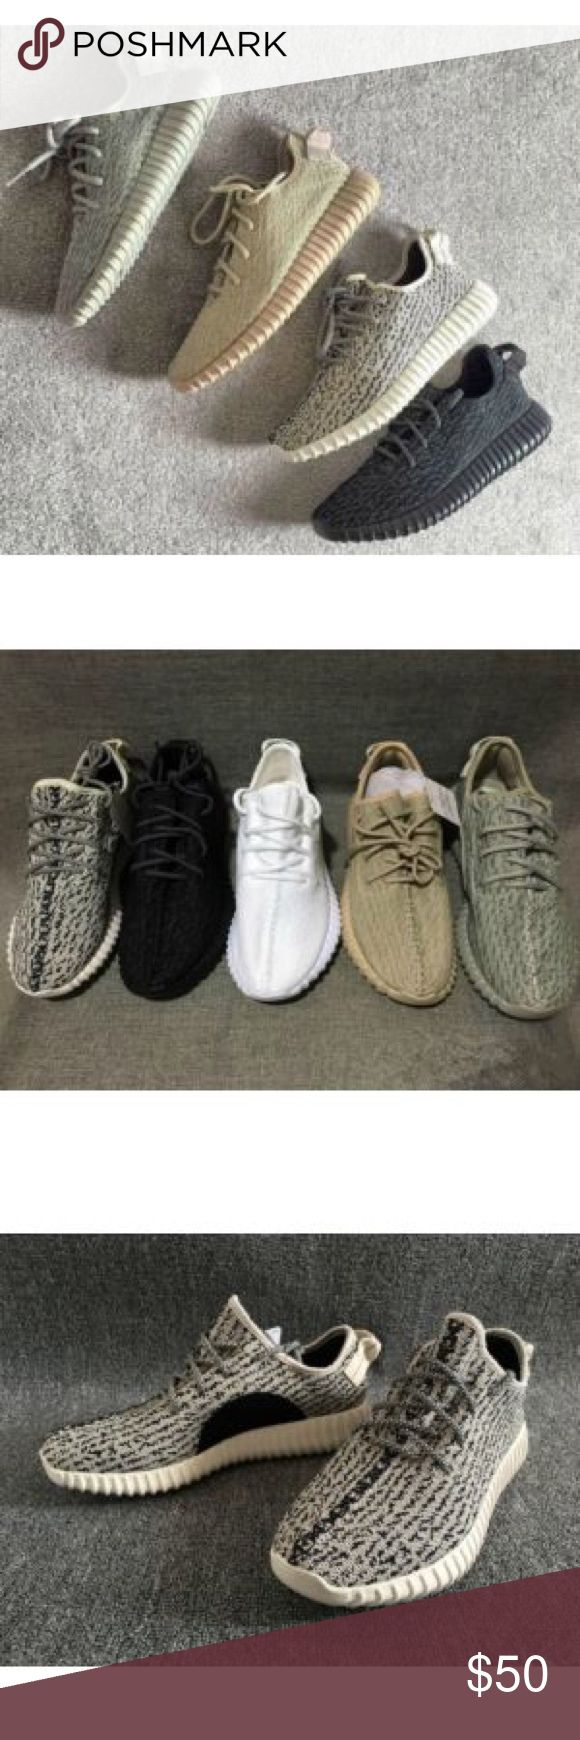 Adidas Yeezy Boost 350 I have these in all color ways and sizes 5-13US,These are My lower quality replicas if you want better quality it's gonna cost more, I'm taking payments via Paypaal ONLY, DONT PURCHASE VIA POSHMARK. Text me if you're interested 619-468-7974 ignore tags supreme bape ftp palace gucci yeezy vlone golf Yeezy Shoes